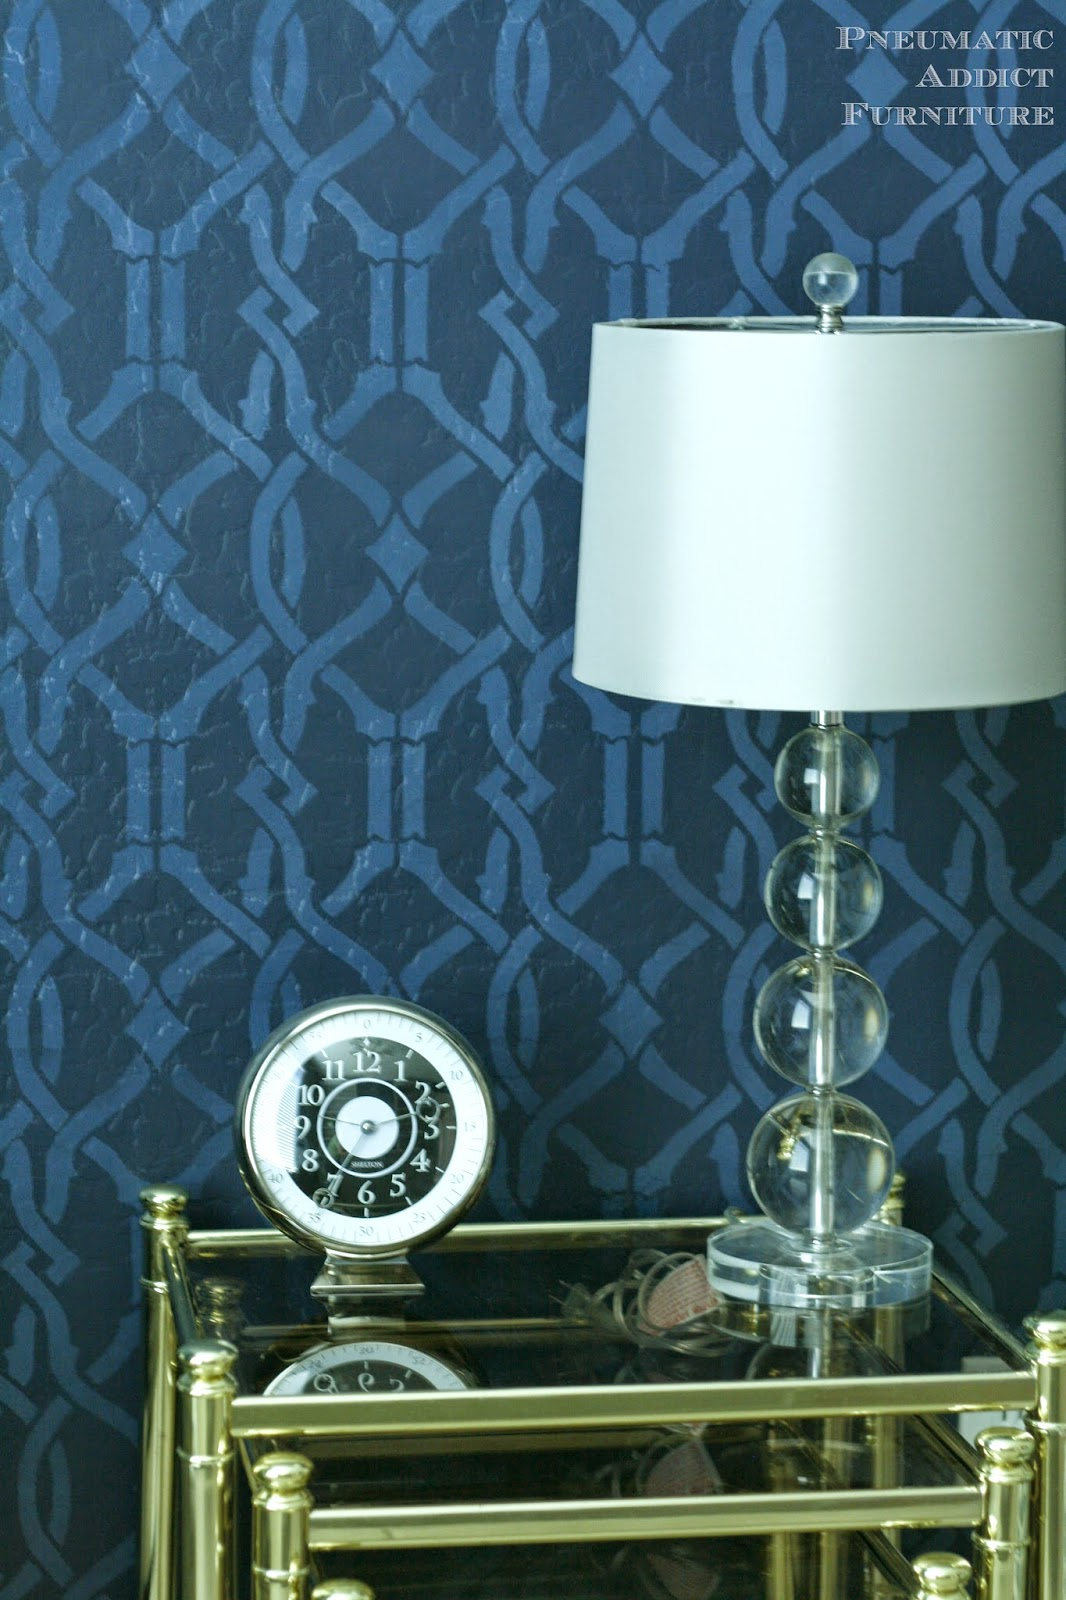 How to create a tone on tone pattern on a wall using a stencil.